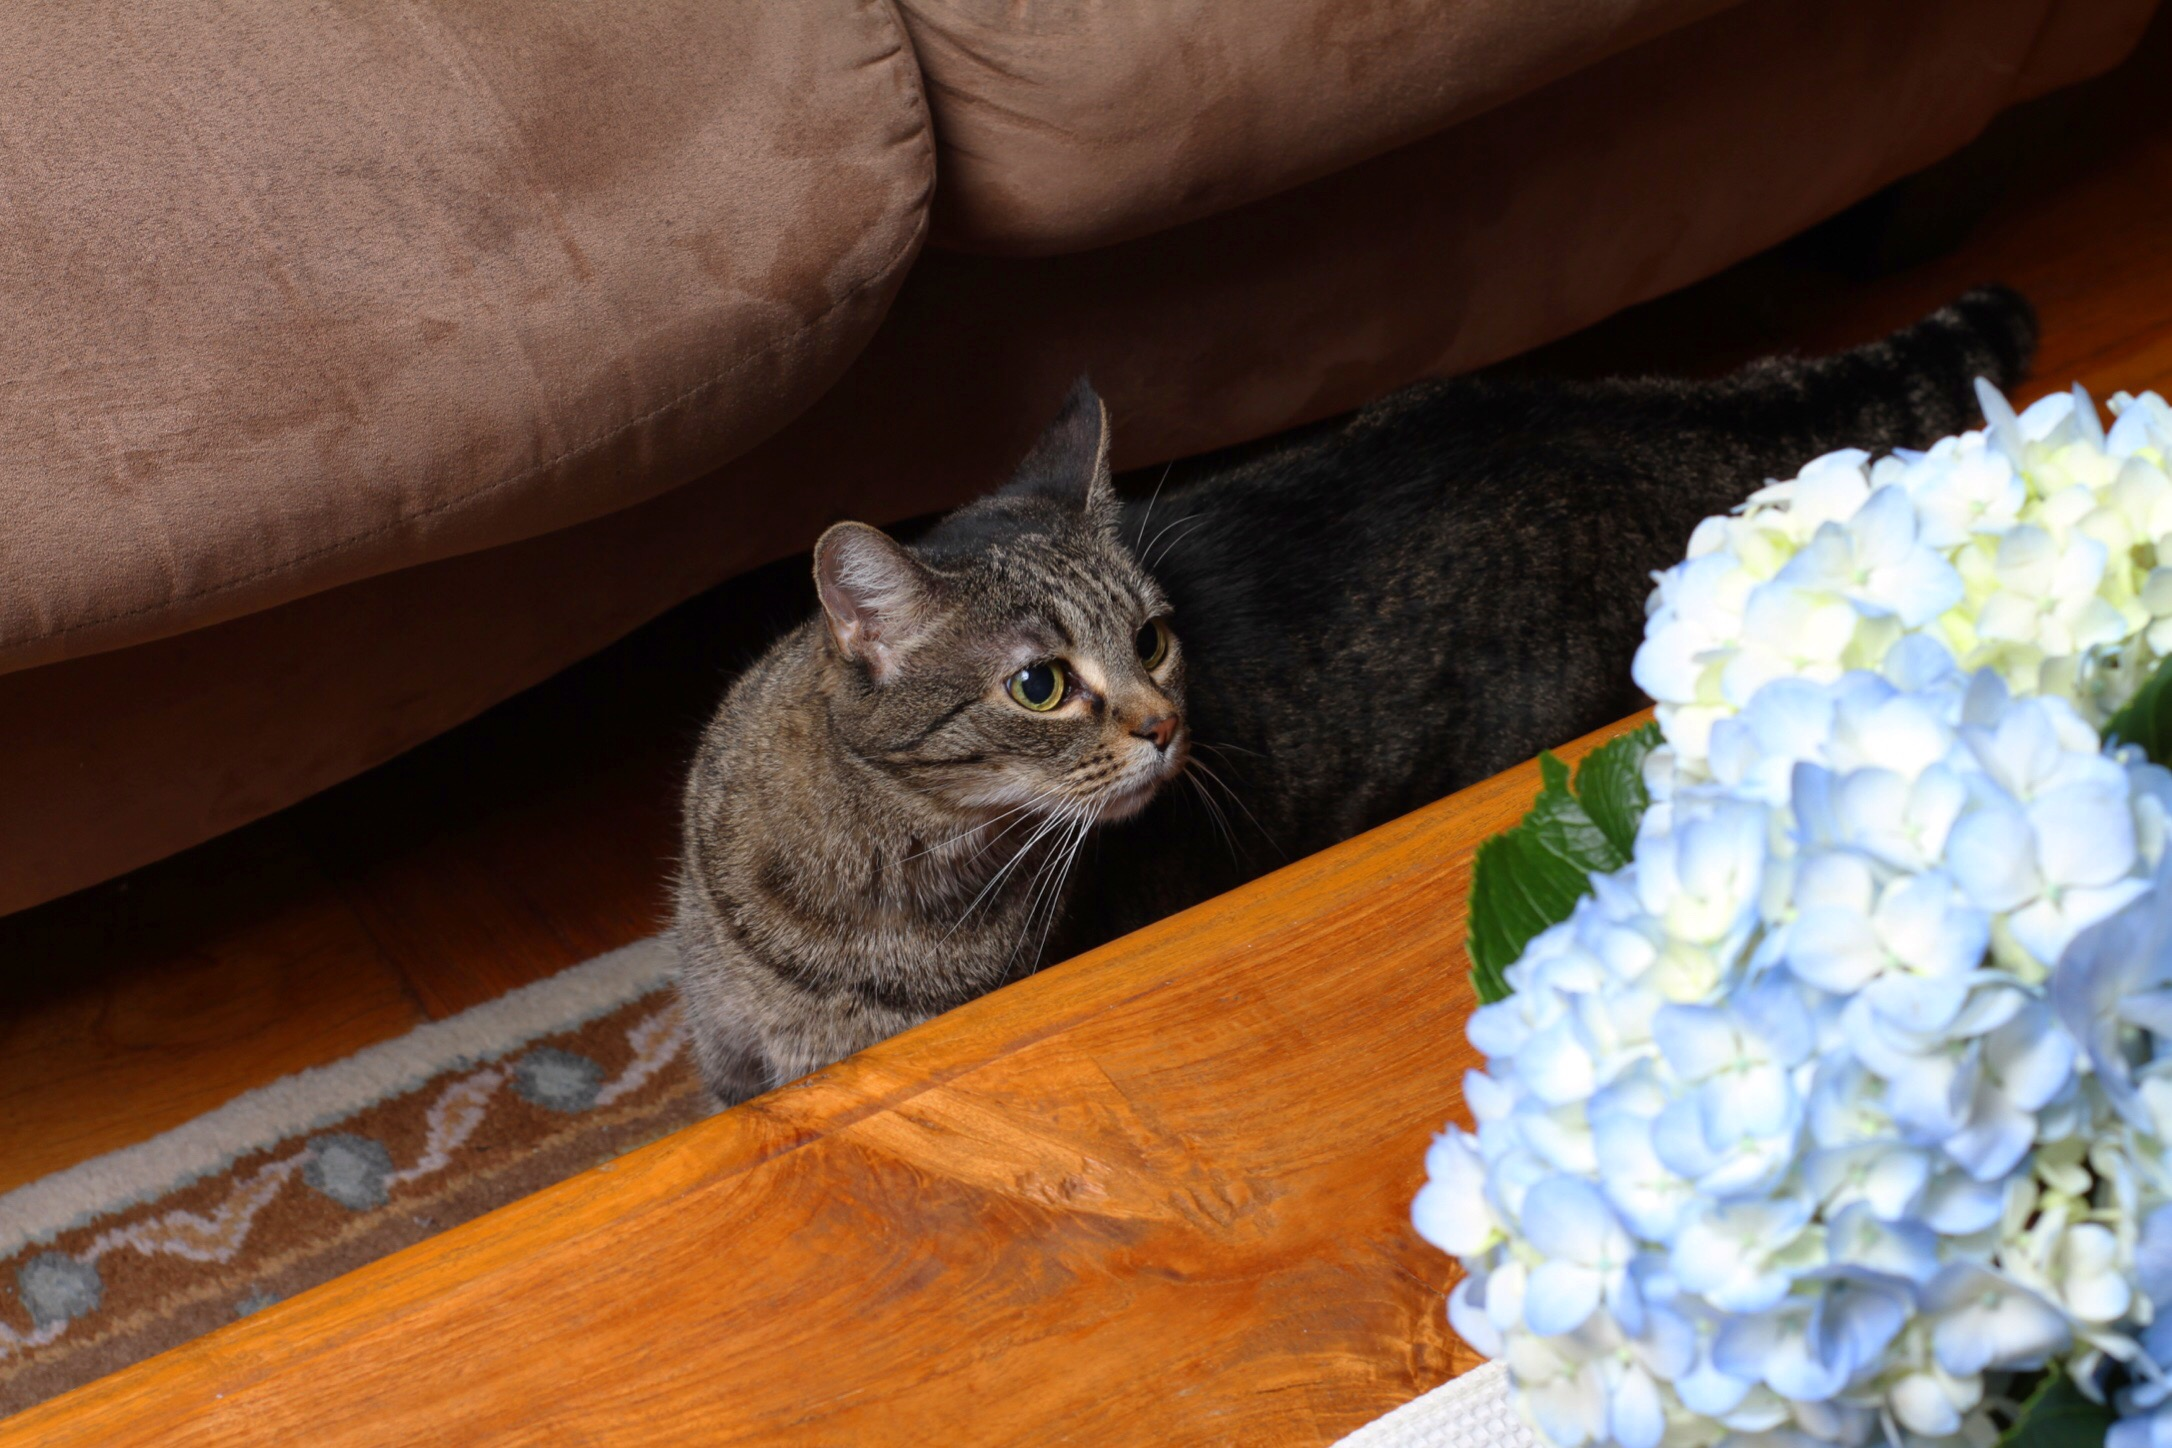 Athens enjoying life, trying to smell, or steal, the hydrangea on our coffee table!